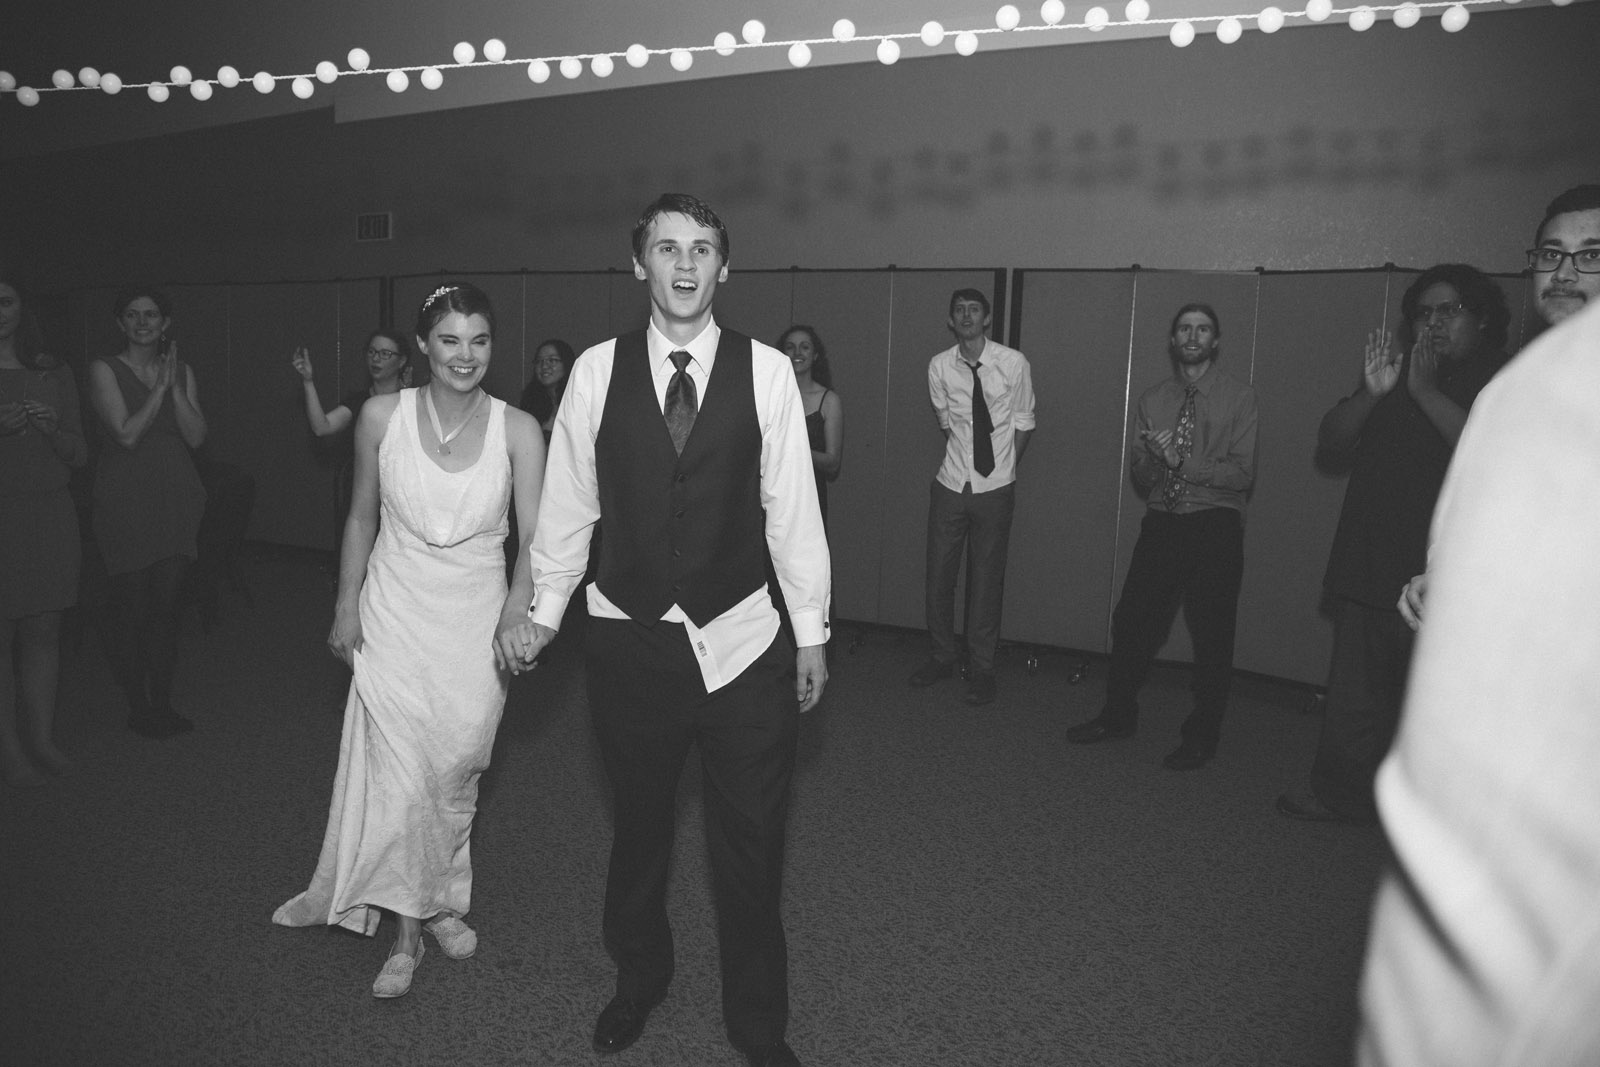 169-nm-reception-dance-taken-during-the-fun-and-joy